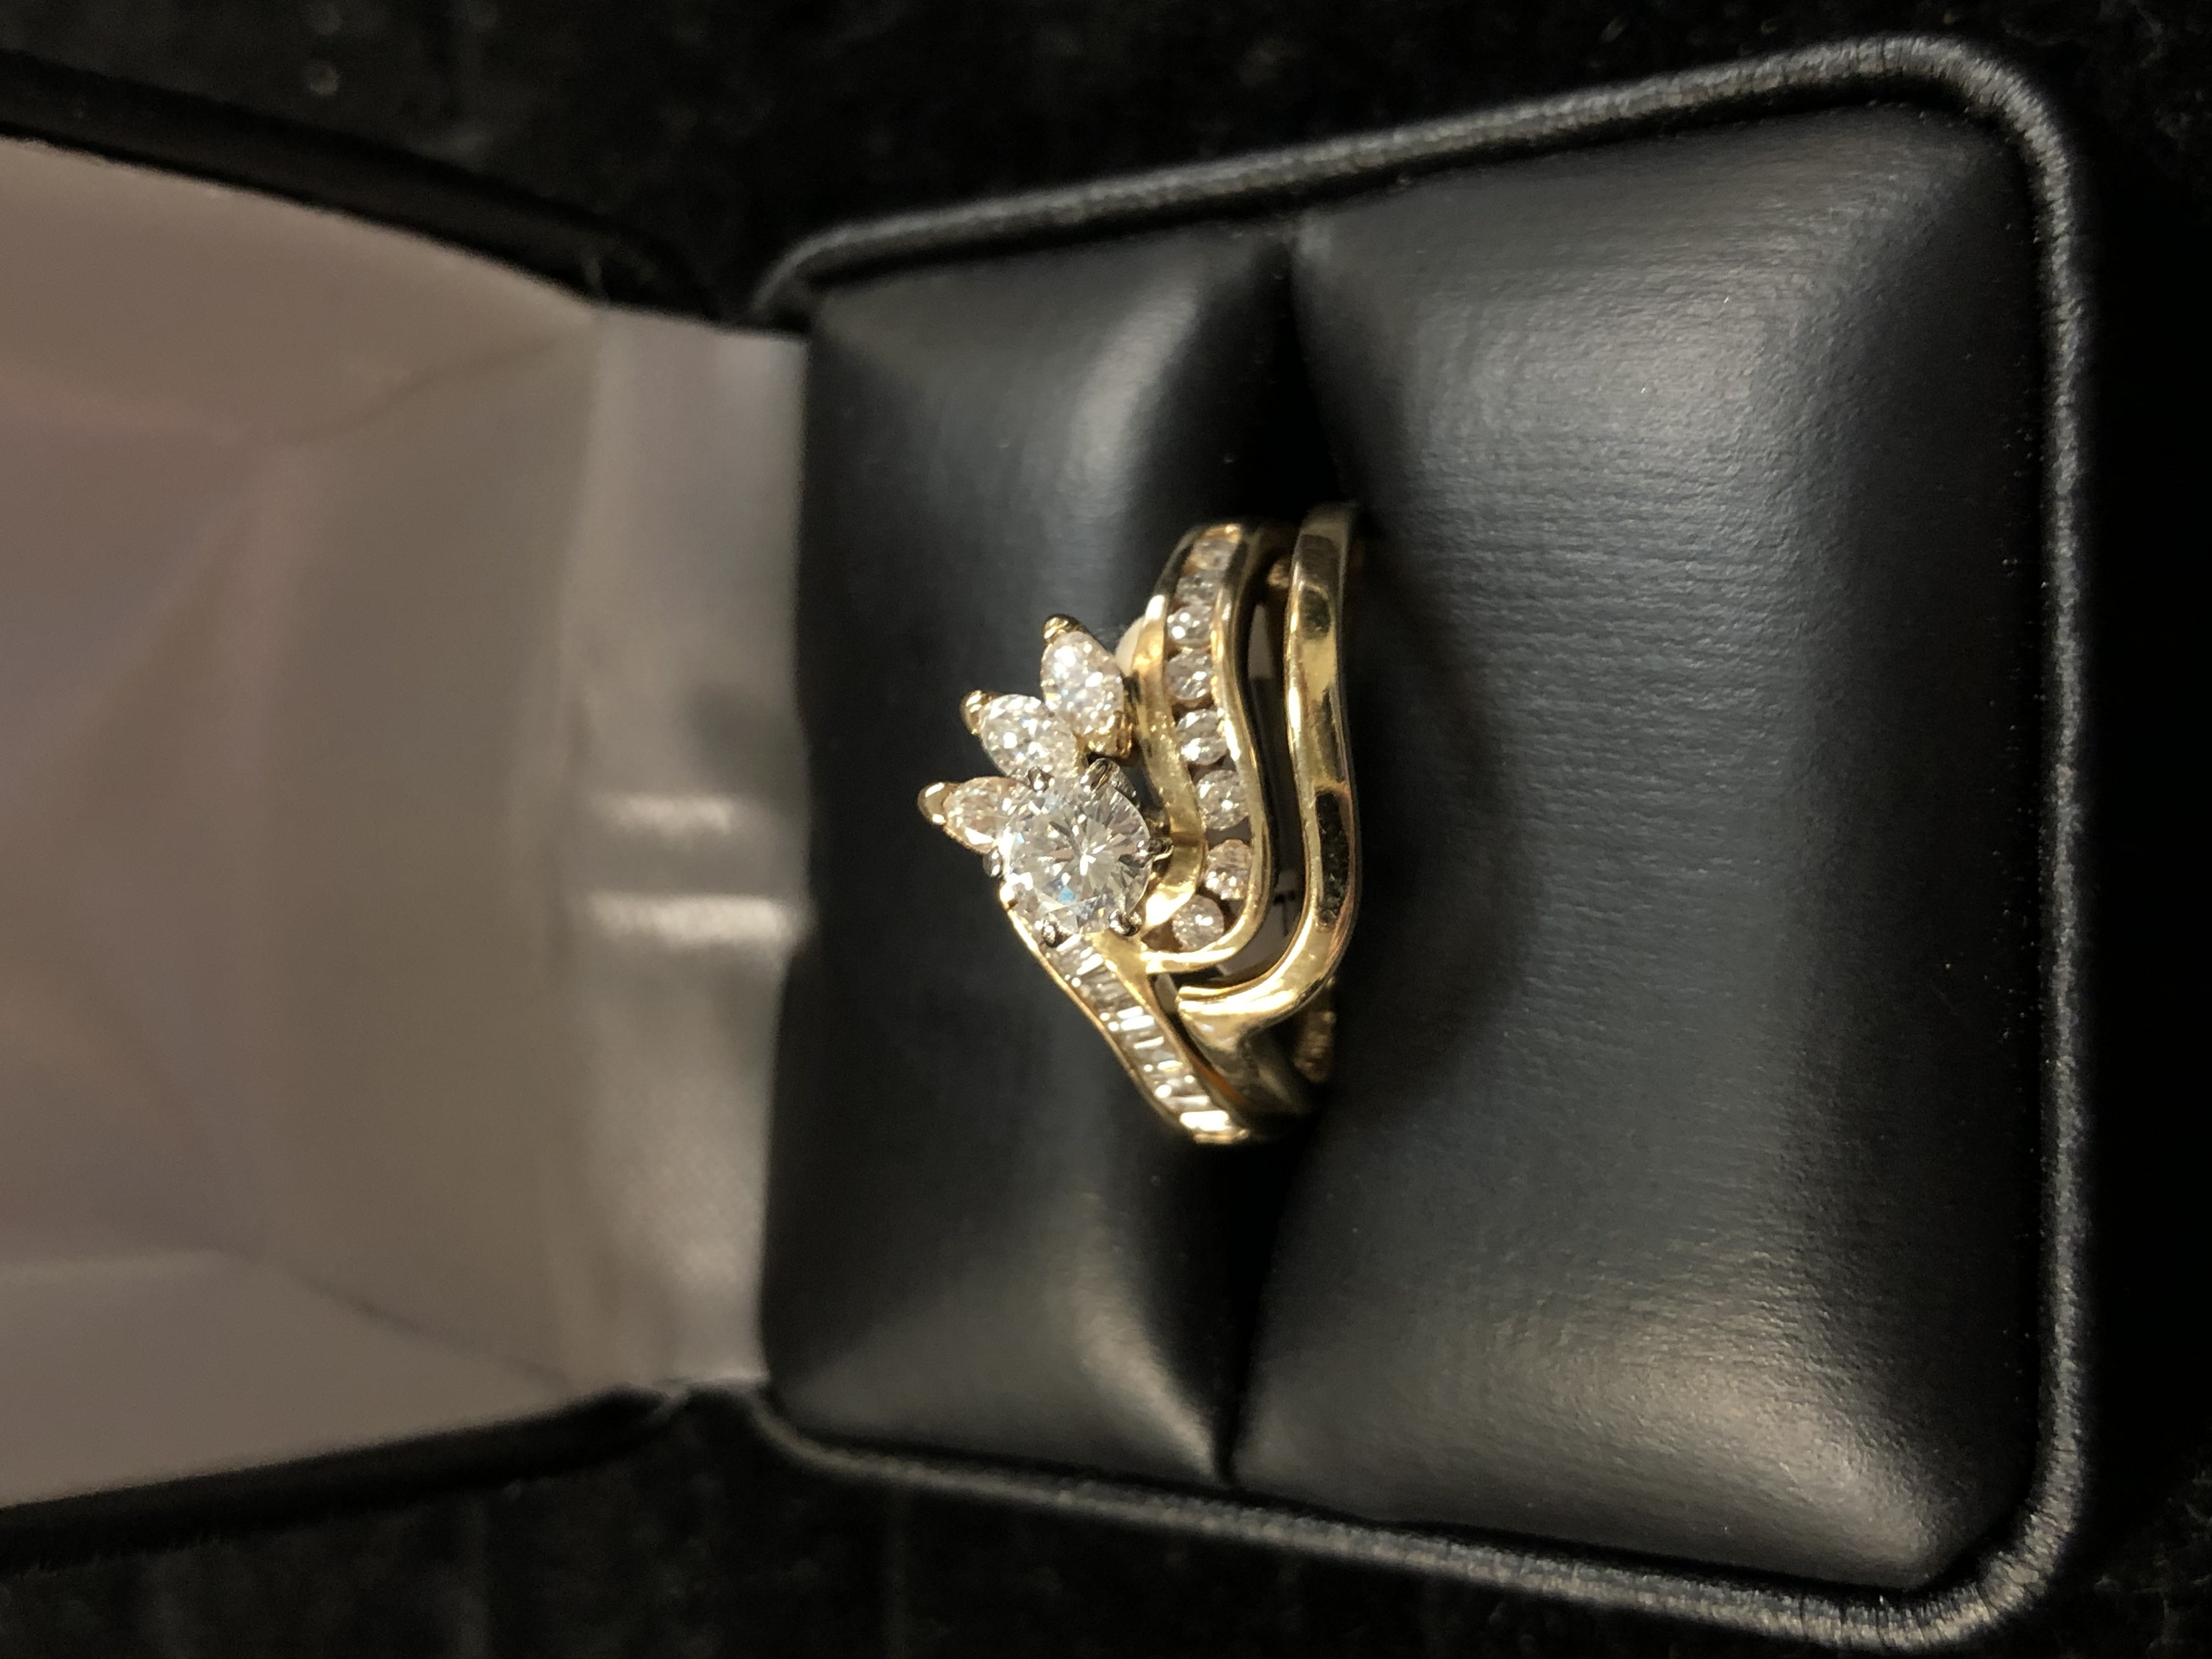 14 KT YELLOW GOLD 1/4 CT ROUND SOLITAIRE W/ 3 MARQUISES, SMALL CHIPS, & BAND